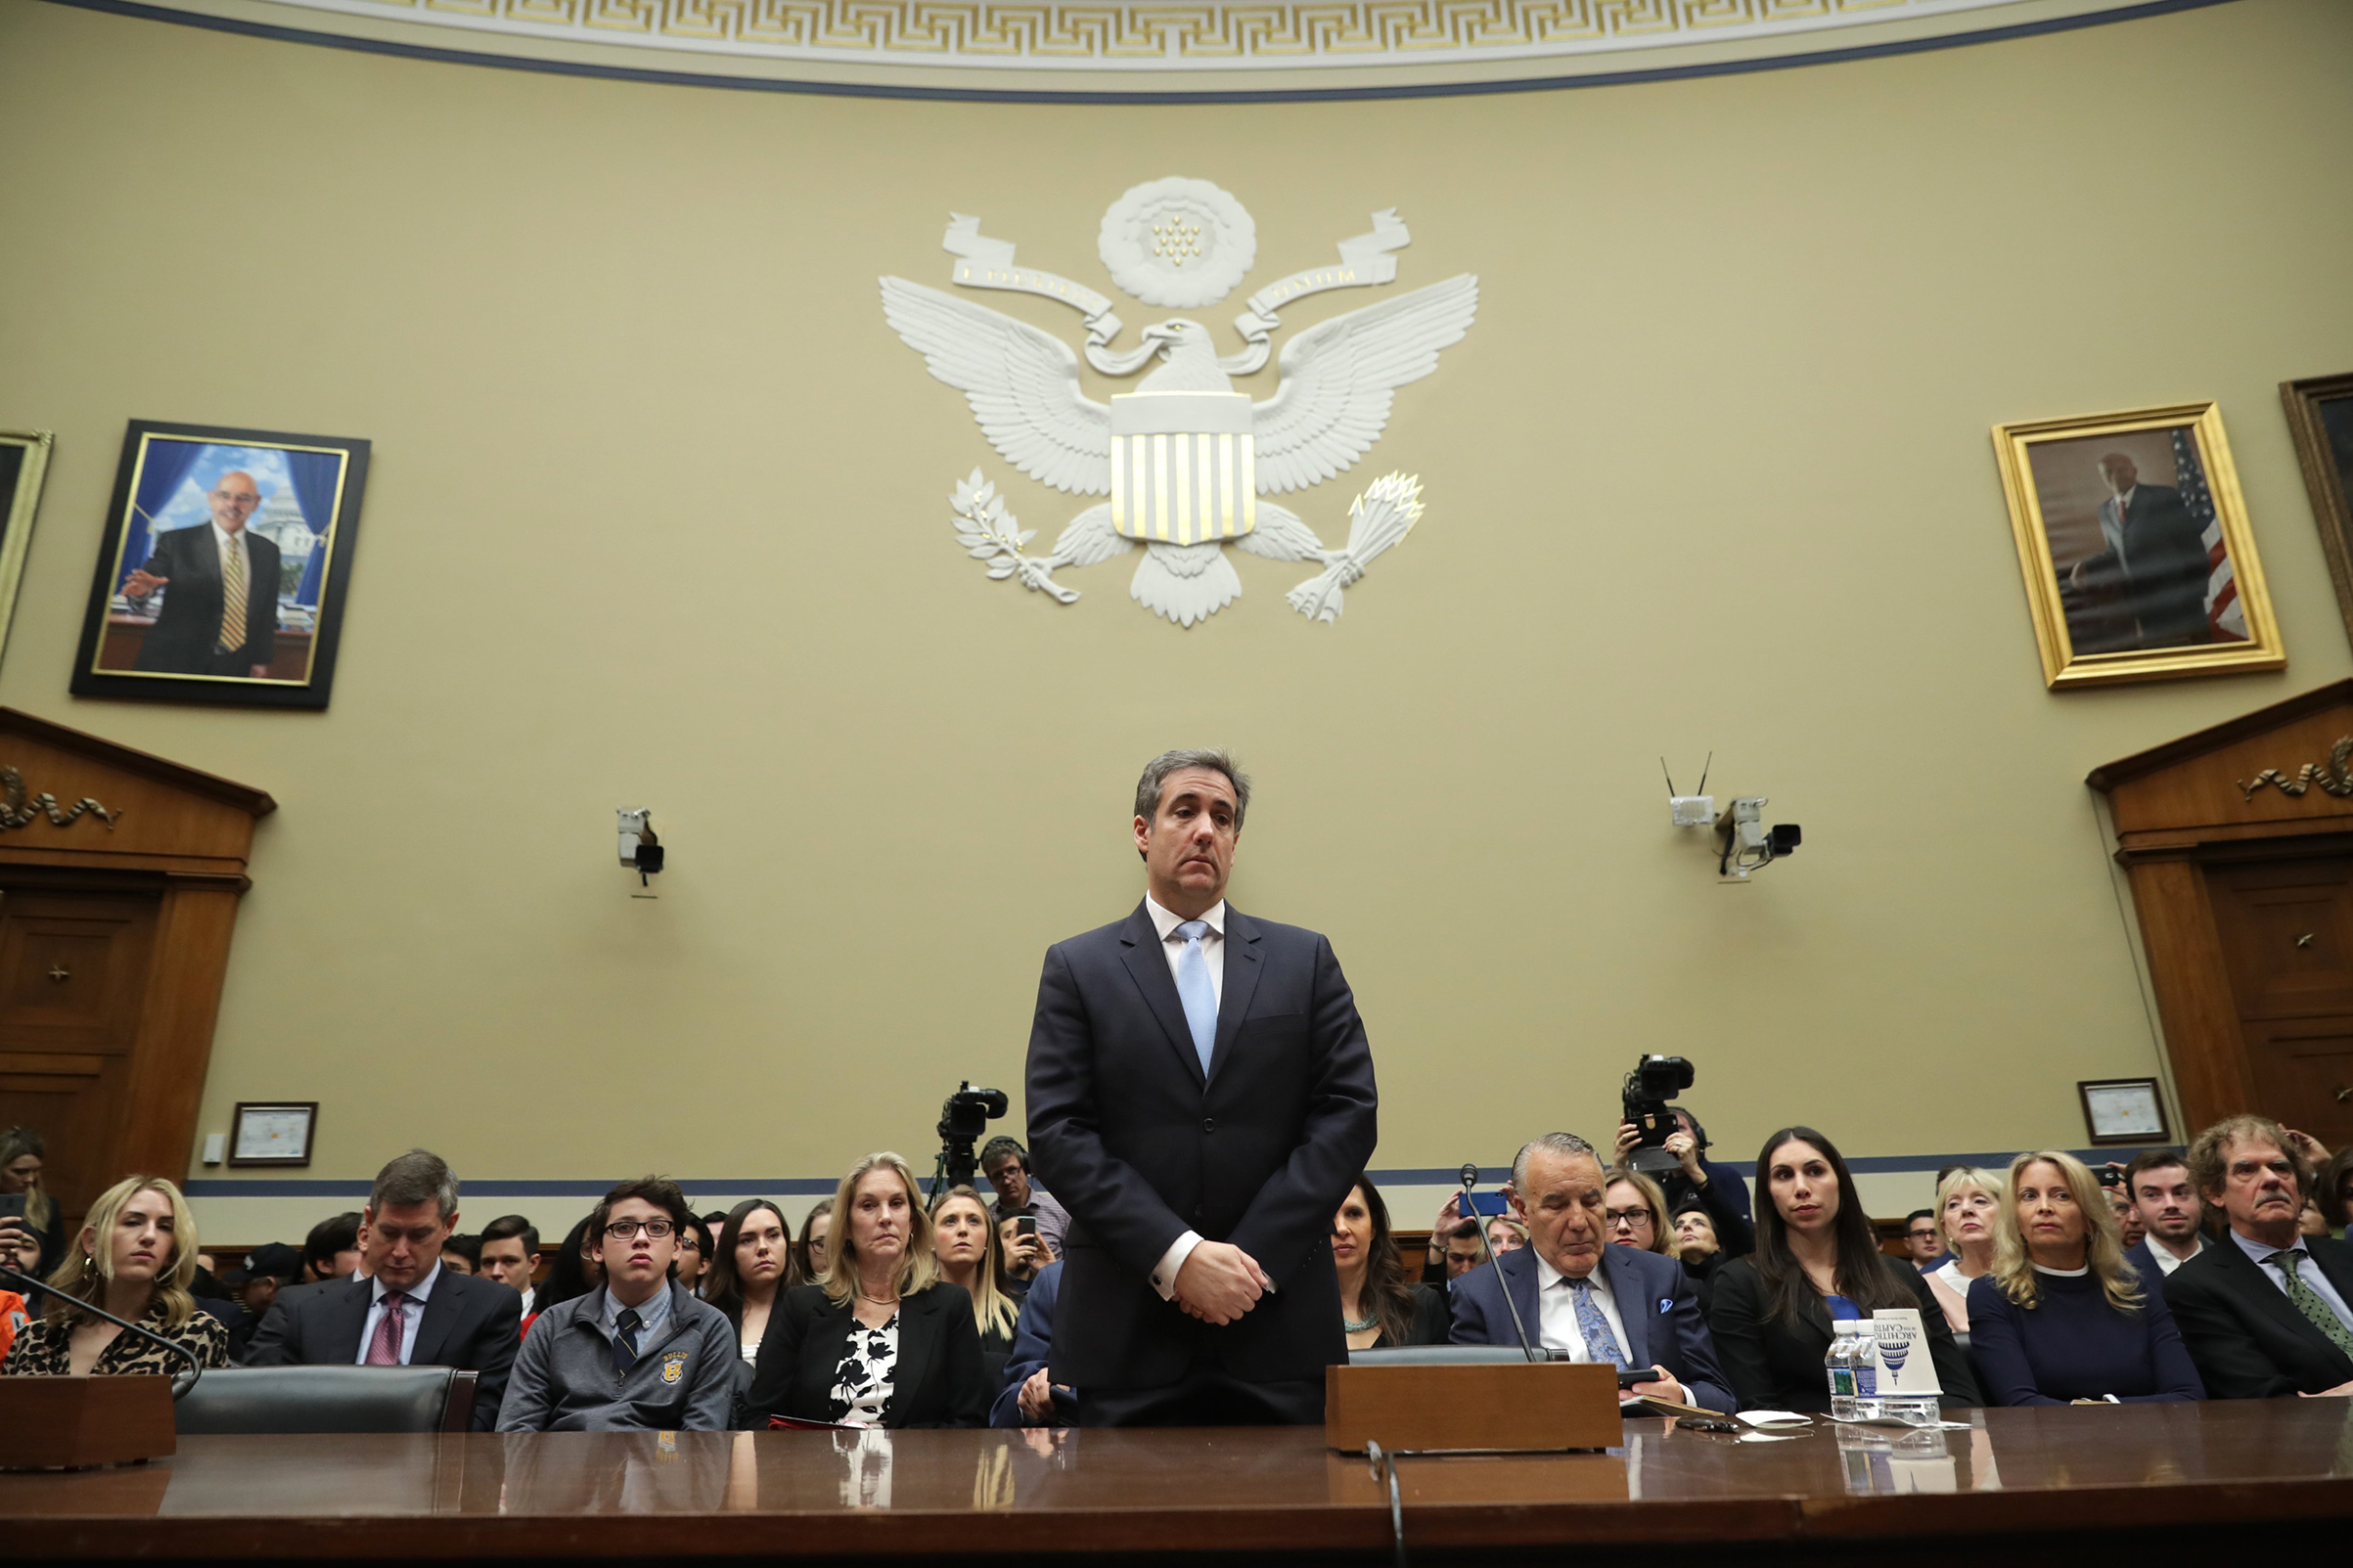 Michael Cohen prepares to testify before the House Oversight Committee on Capitol Hill Feb. 27, 2019 in Washington.